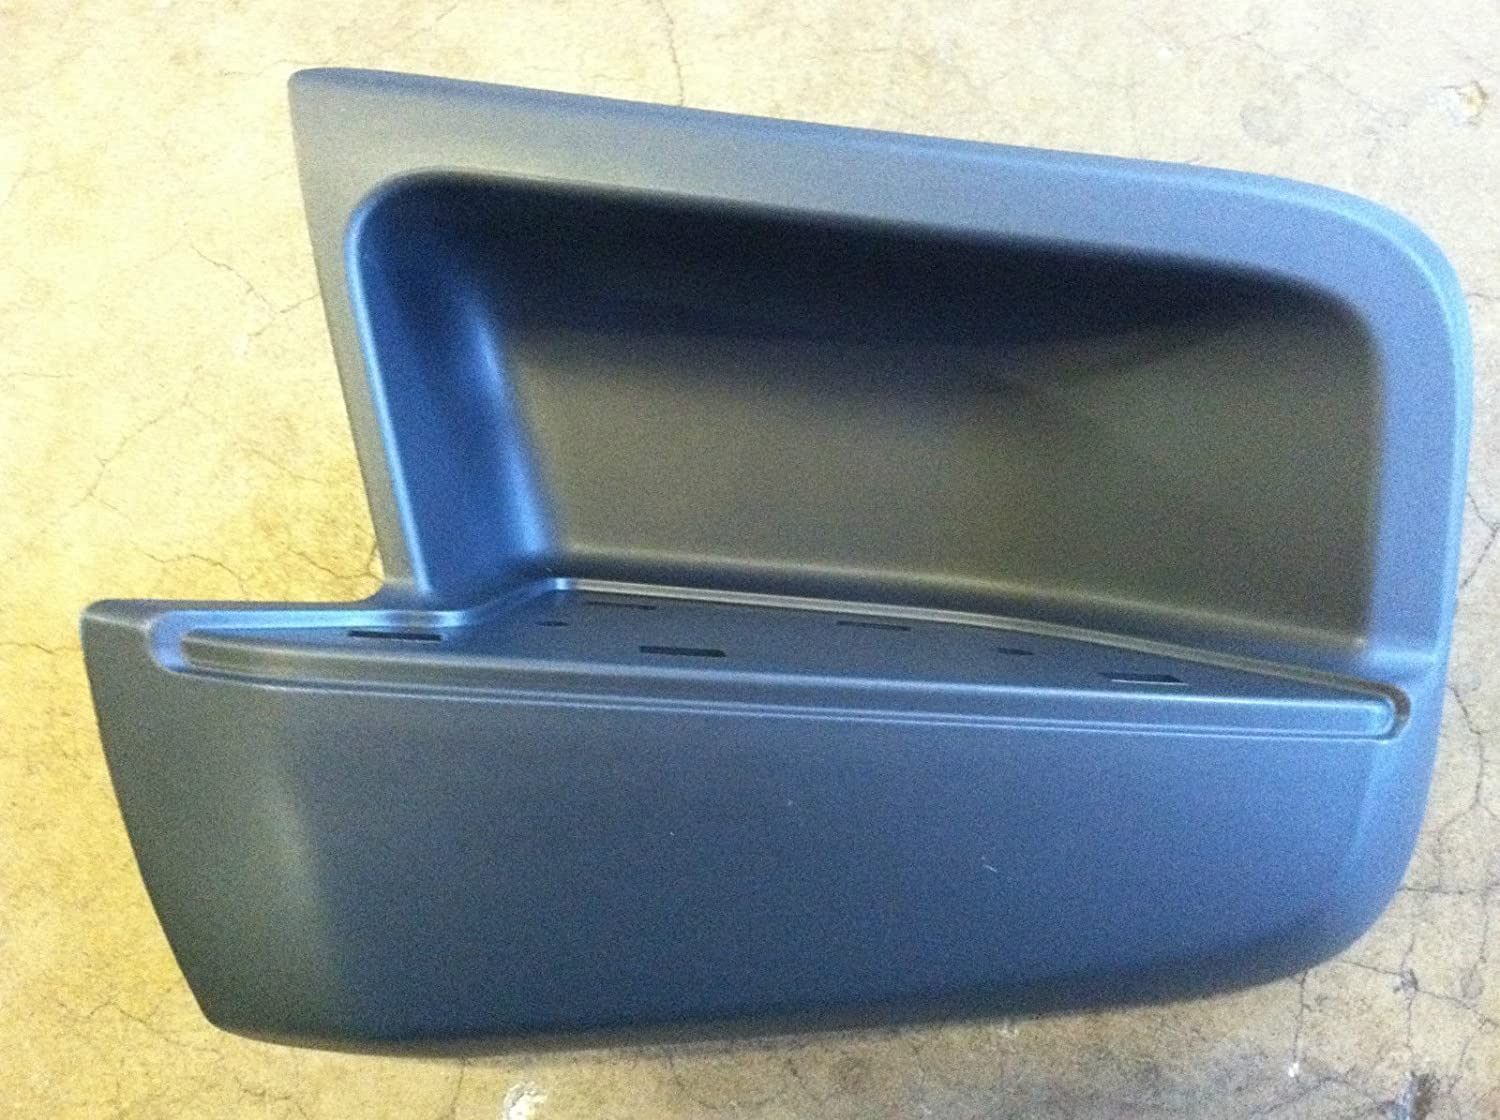 DRIVERS SIDE NEW OEM 2005-2015 NISSAN XTERRA LEFT REAR BUMPER STEP WITH PAD